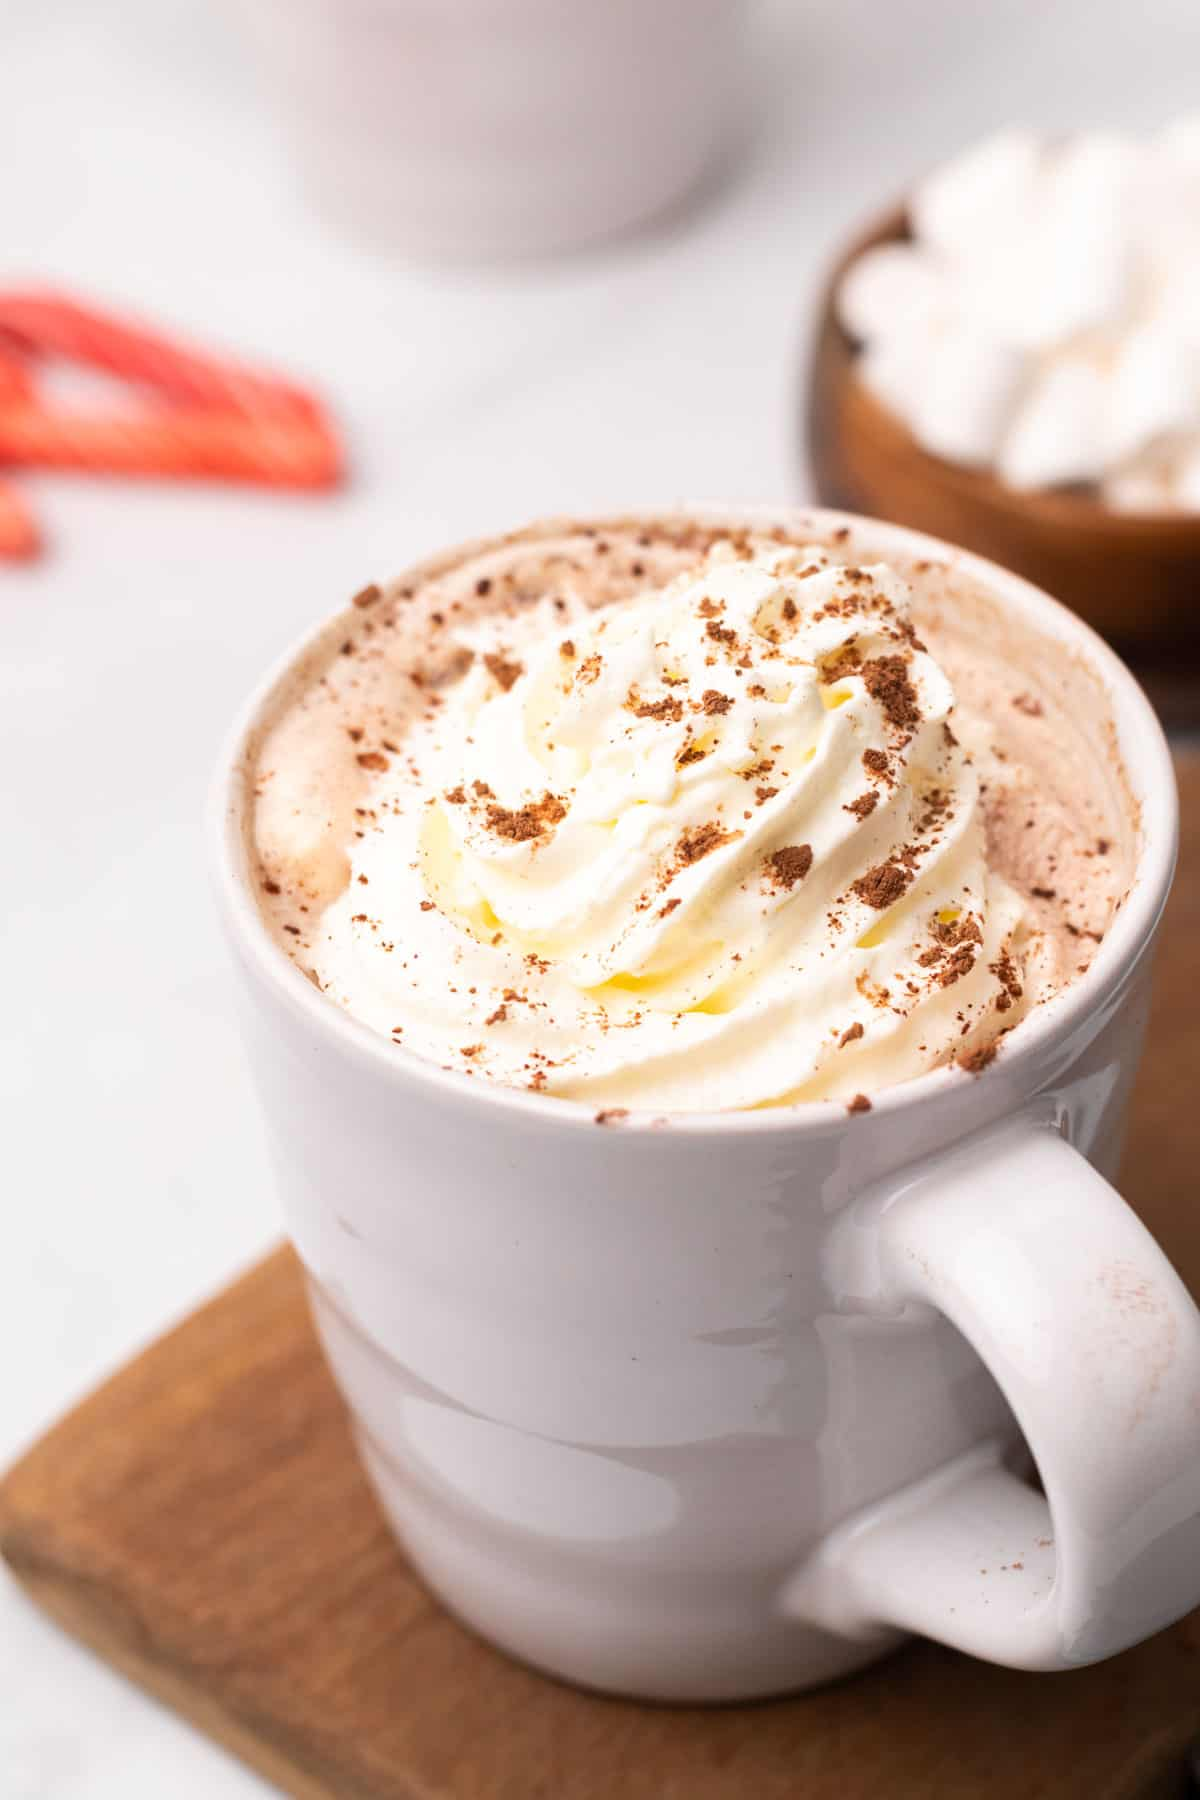 Latte in a white coffee mug topped with whipped cream